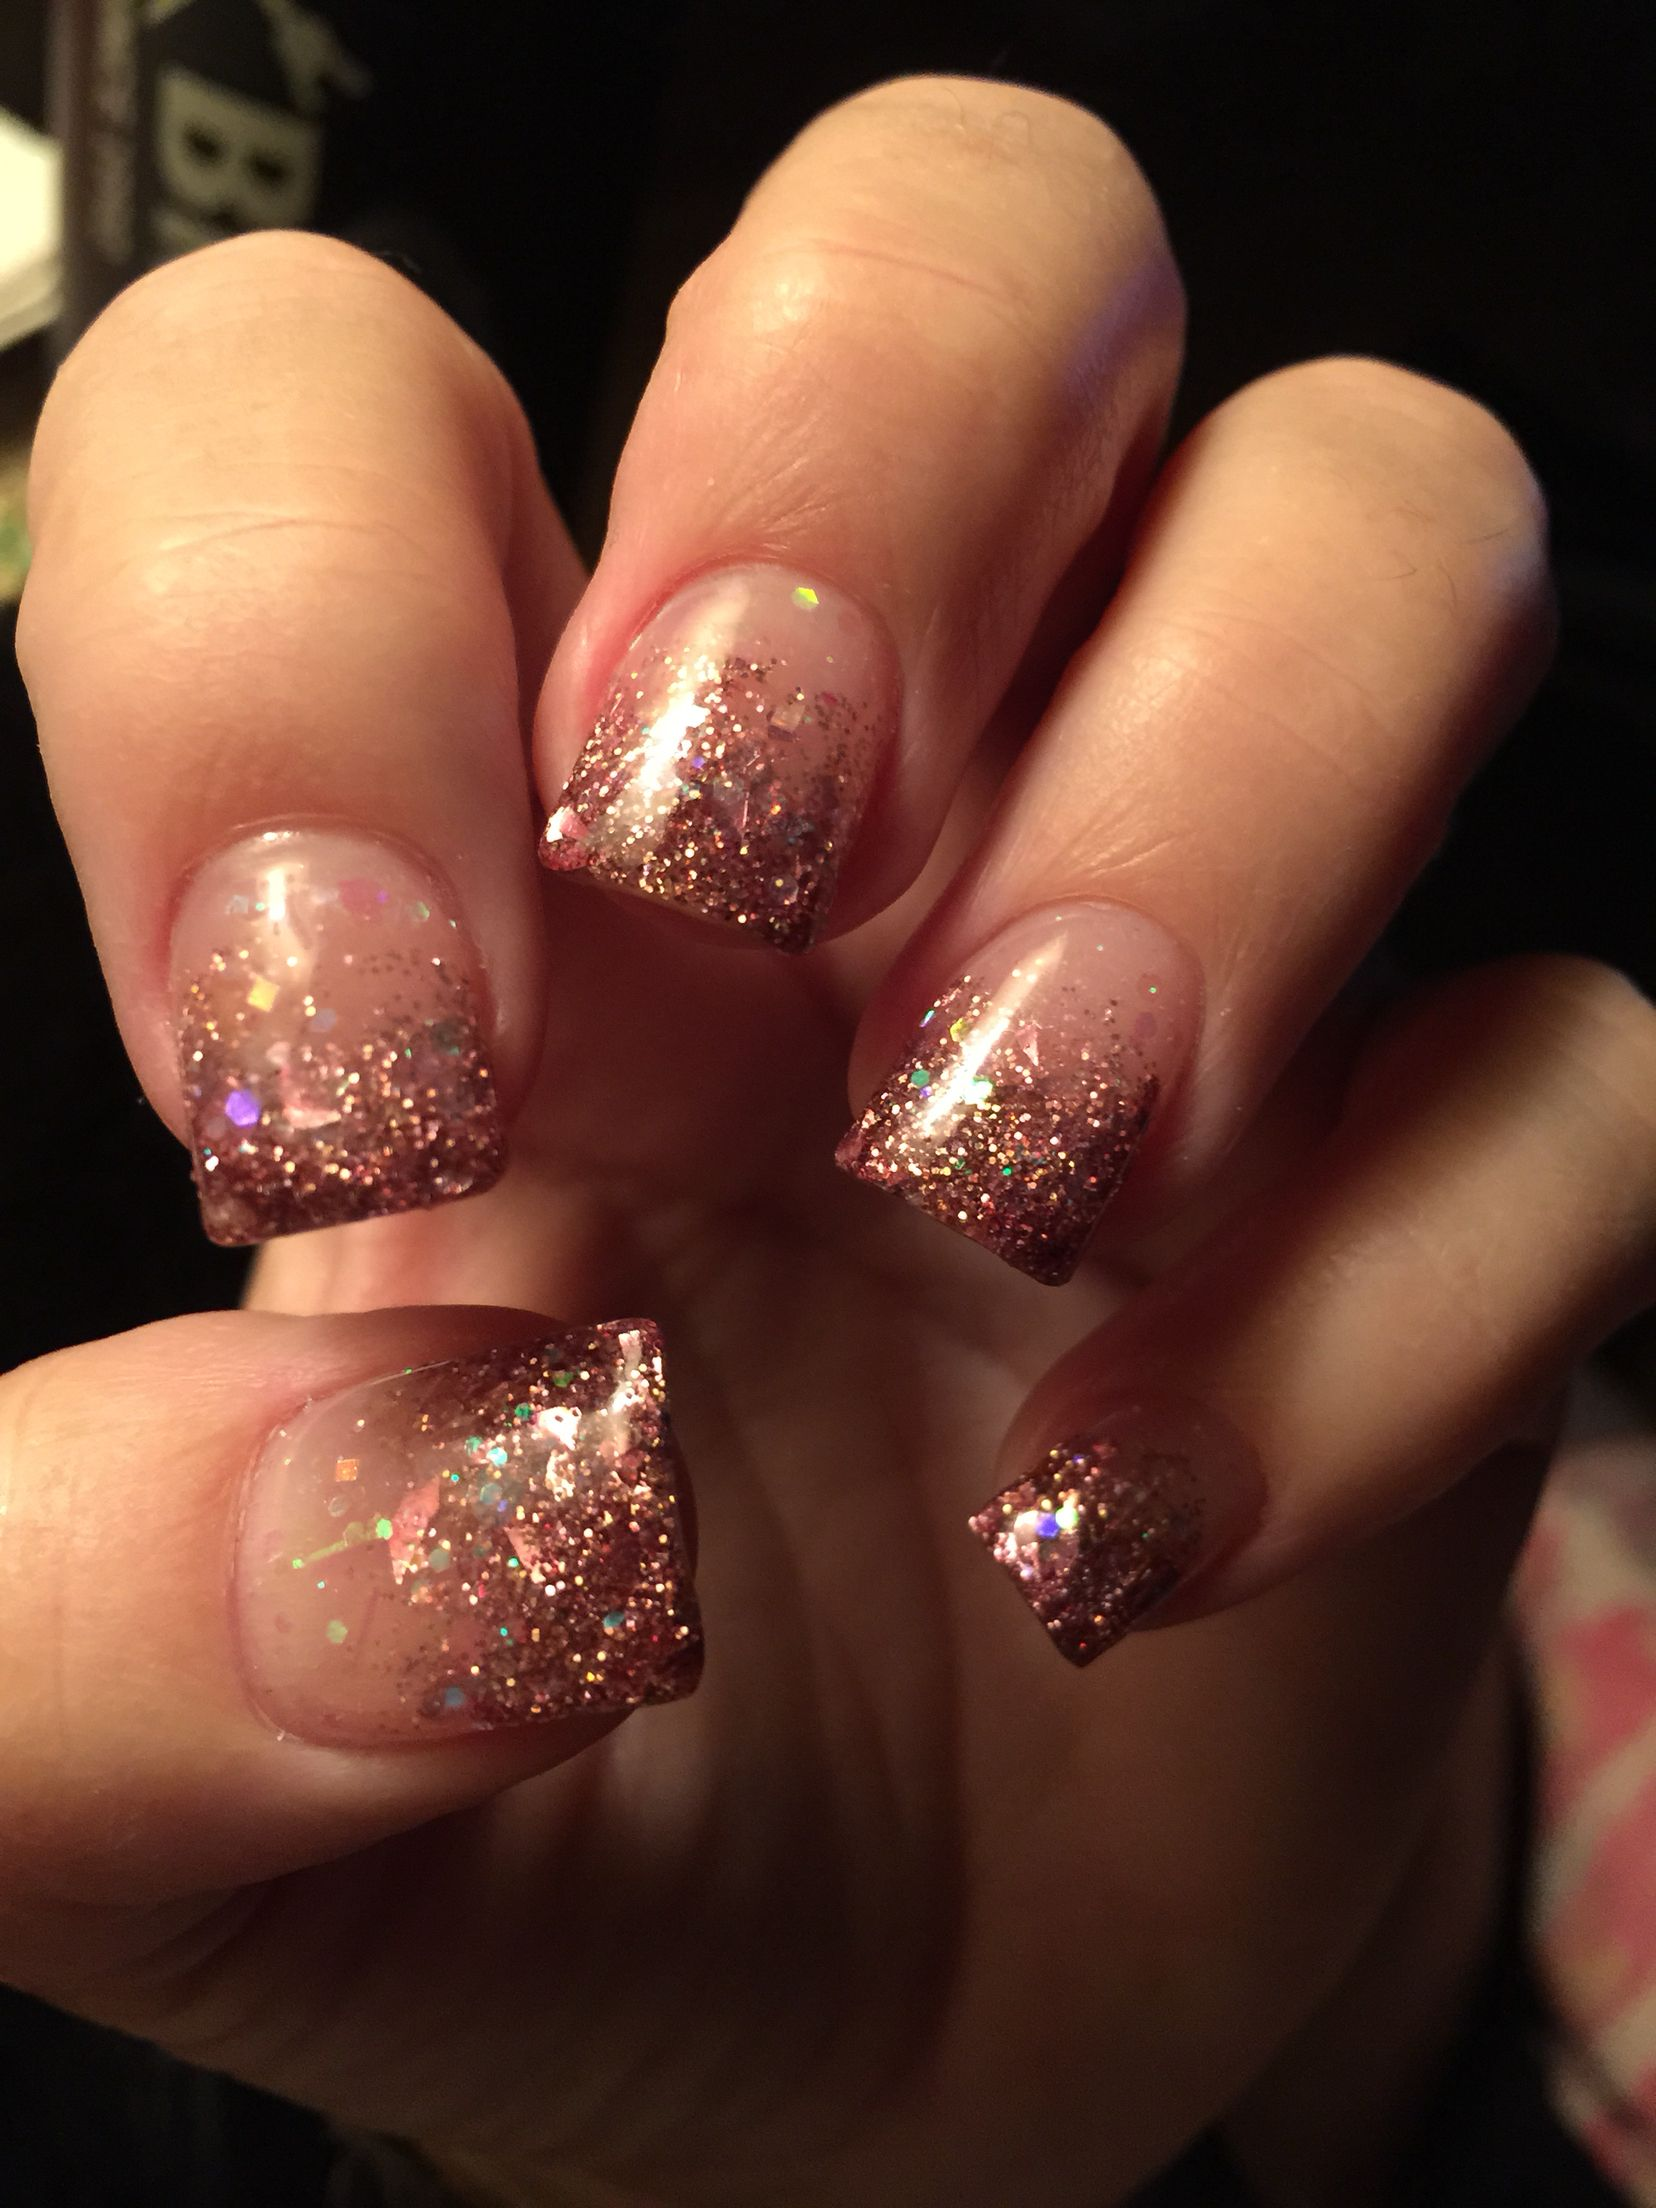 Chic Champagne Colored Faded Acrylic Nails Fall Acrylic Nails Gel Nails Holiday Nails